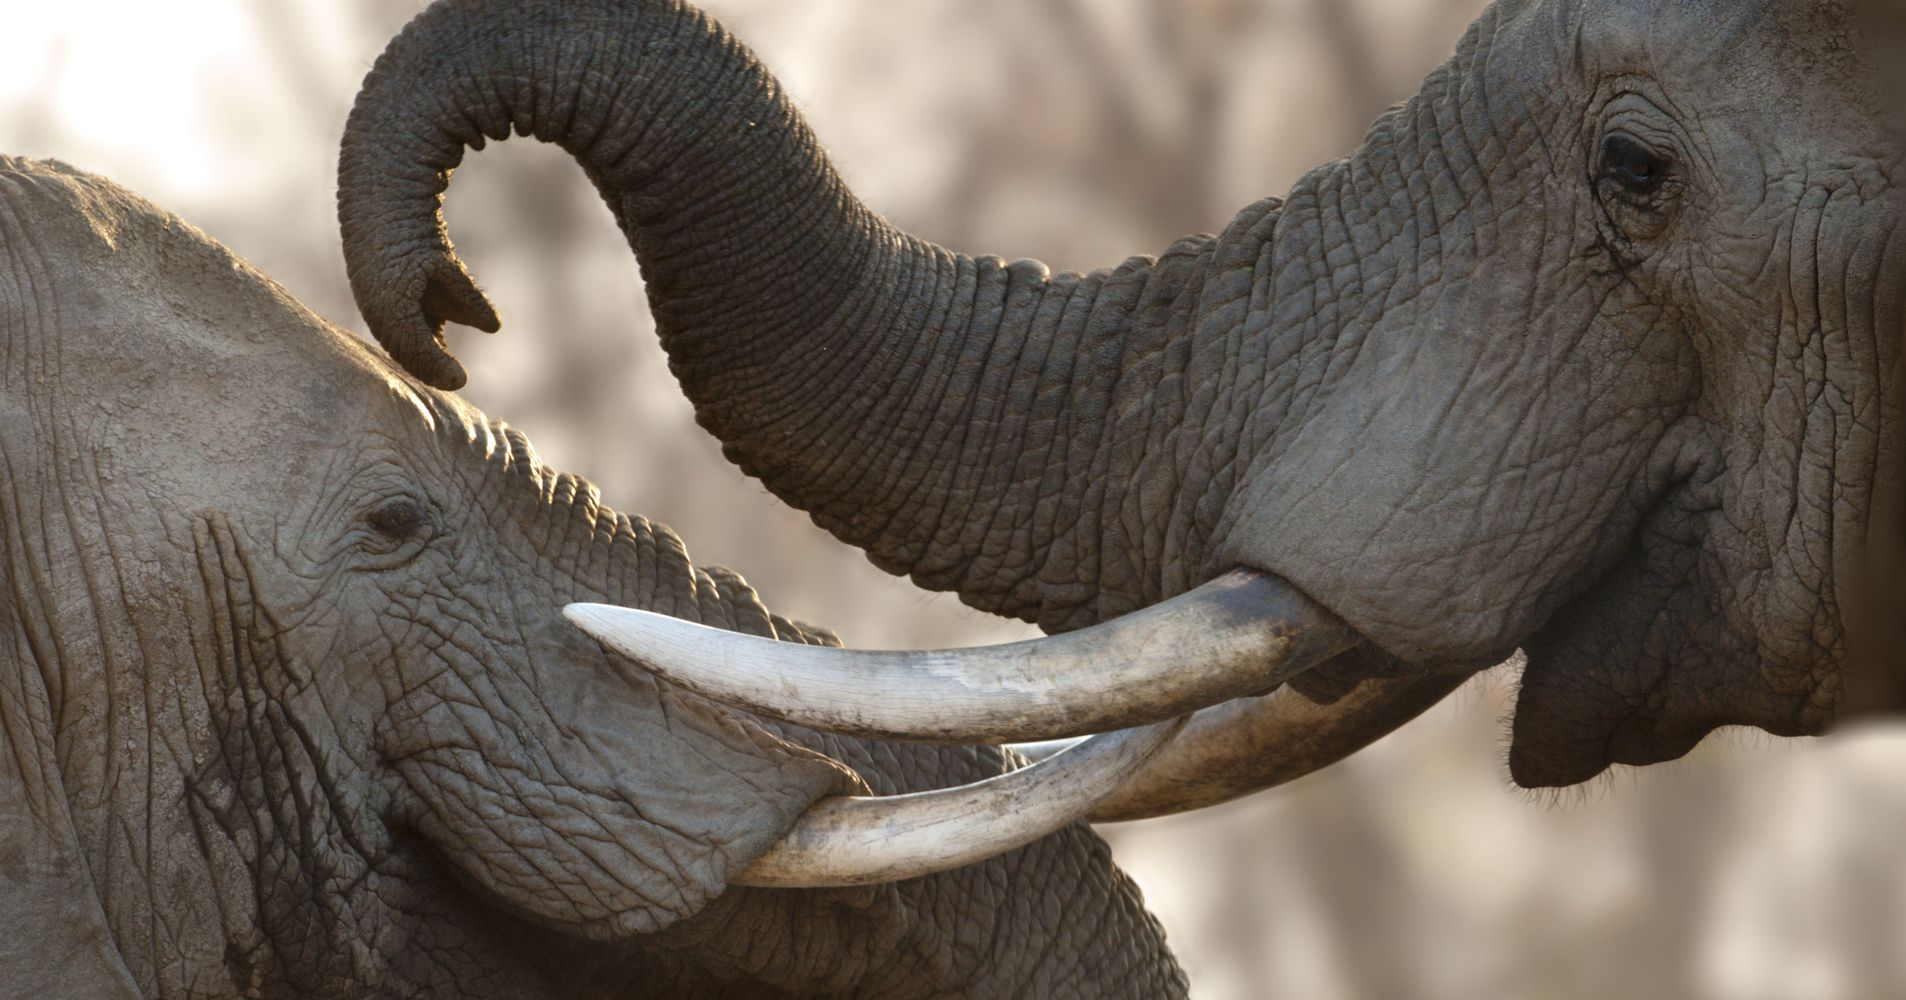 Facing Public Outrage, Trump Puts Elephant Trophy Decision 'On Hold'